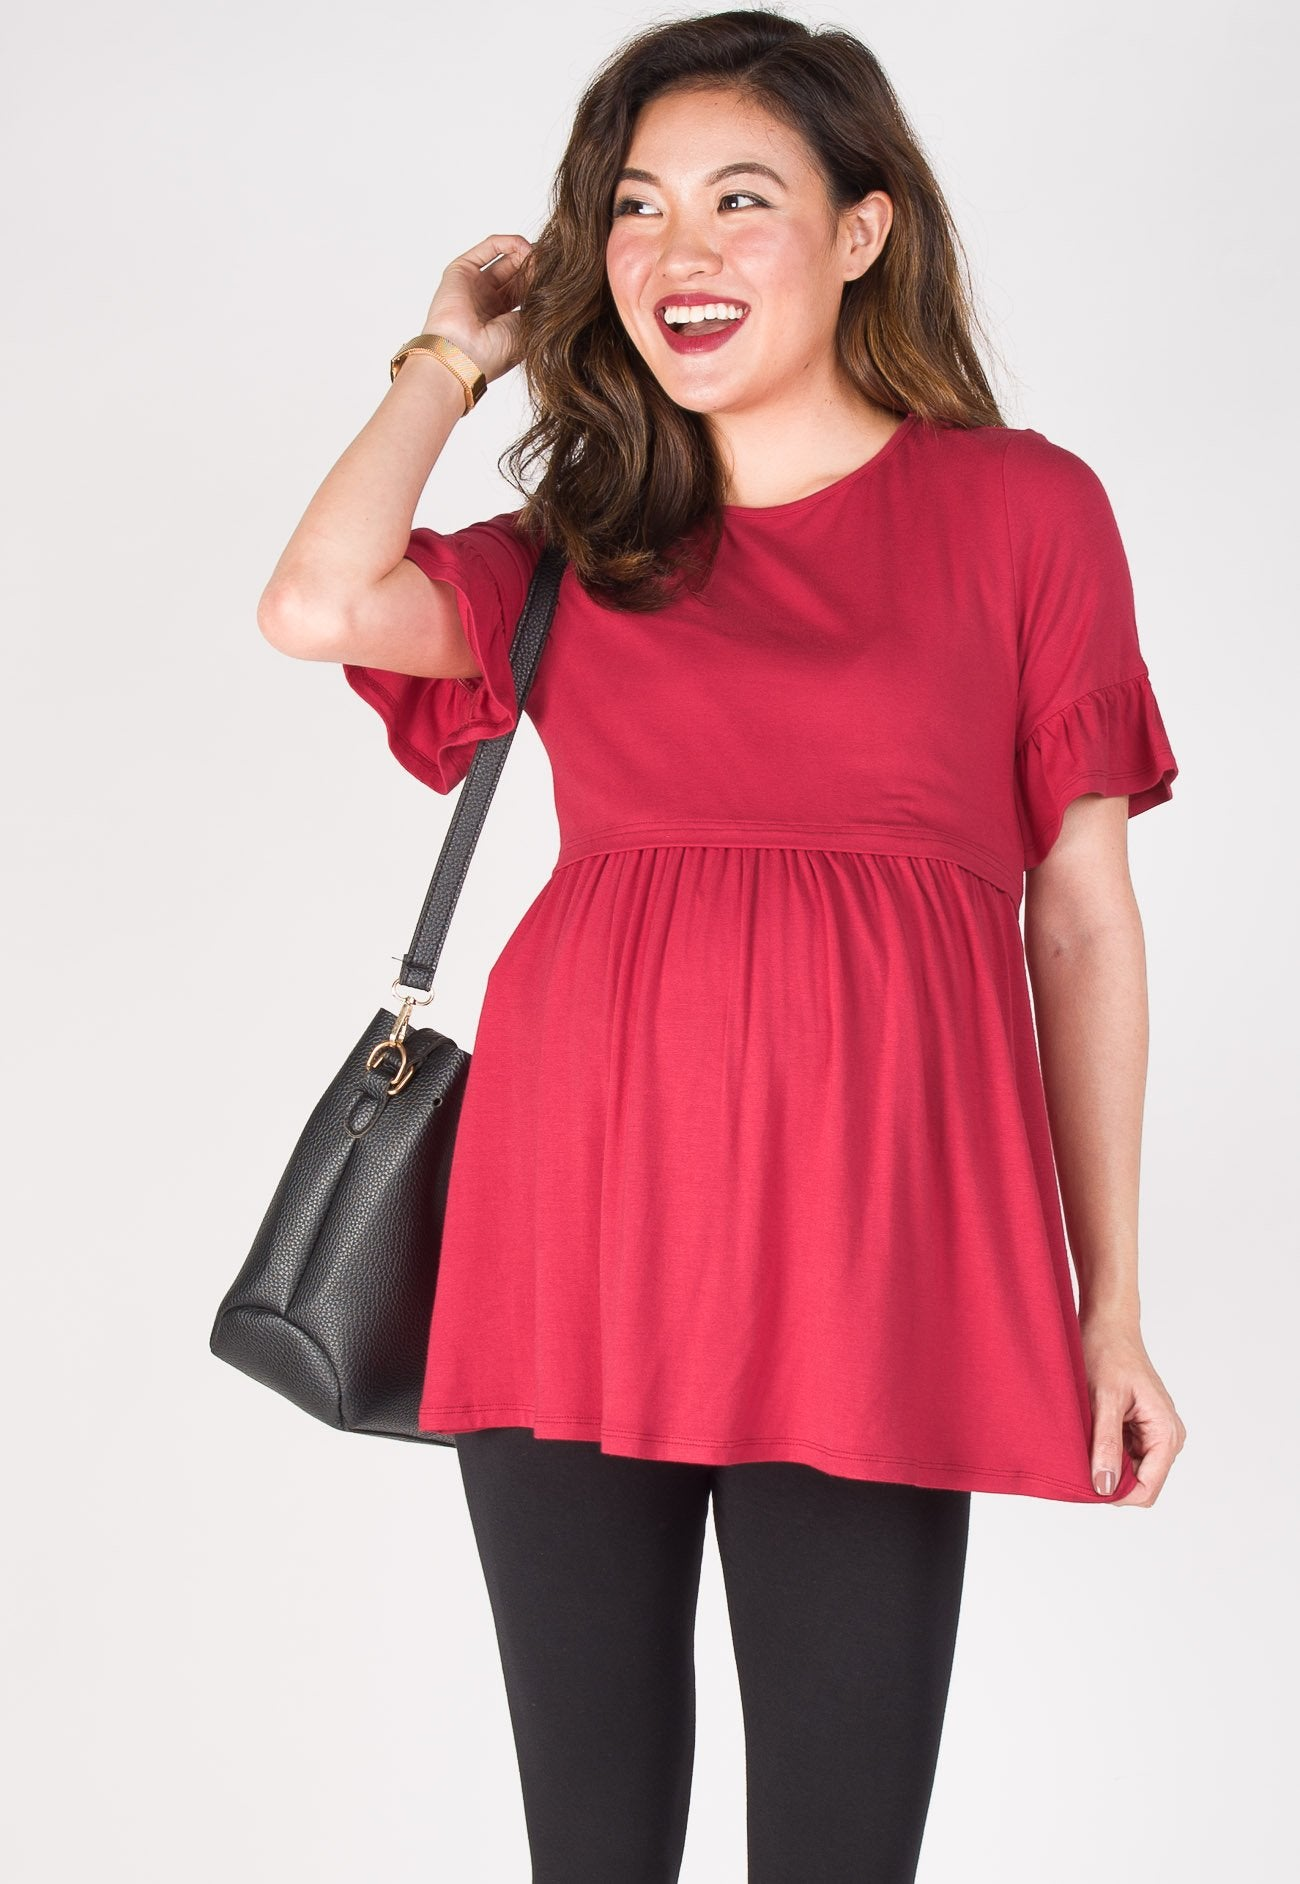 Ruffle It Up Nursing Top in Red  by Jump Eat Cry - Maternity and nursing wear